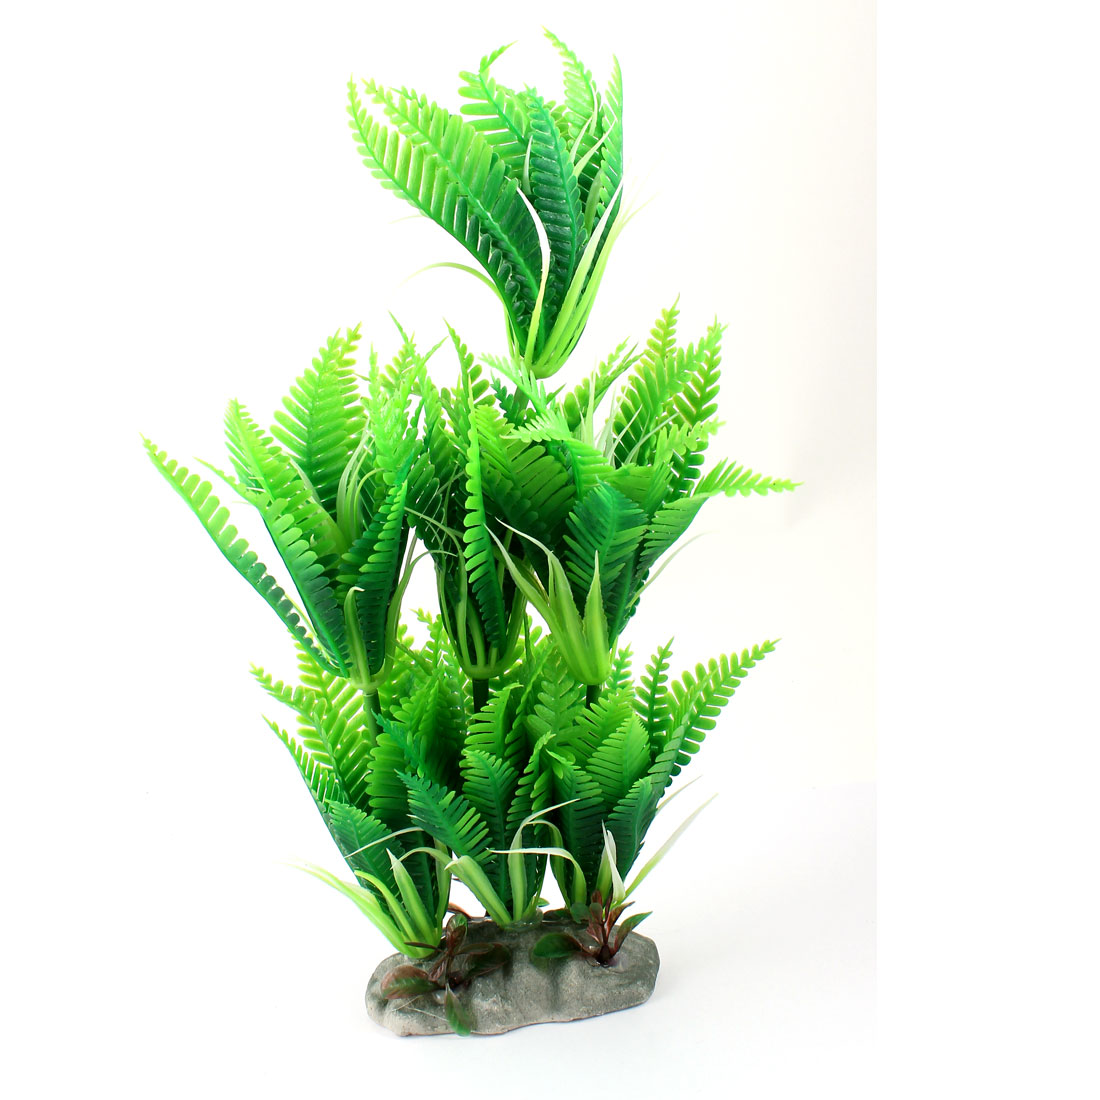 Fish Tank Aquarium Decor Green Emulational Plastic Aquatic Plant 28cm High